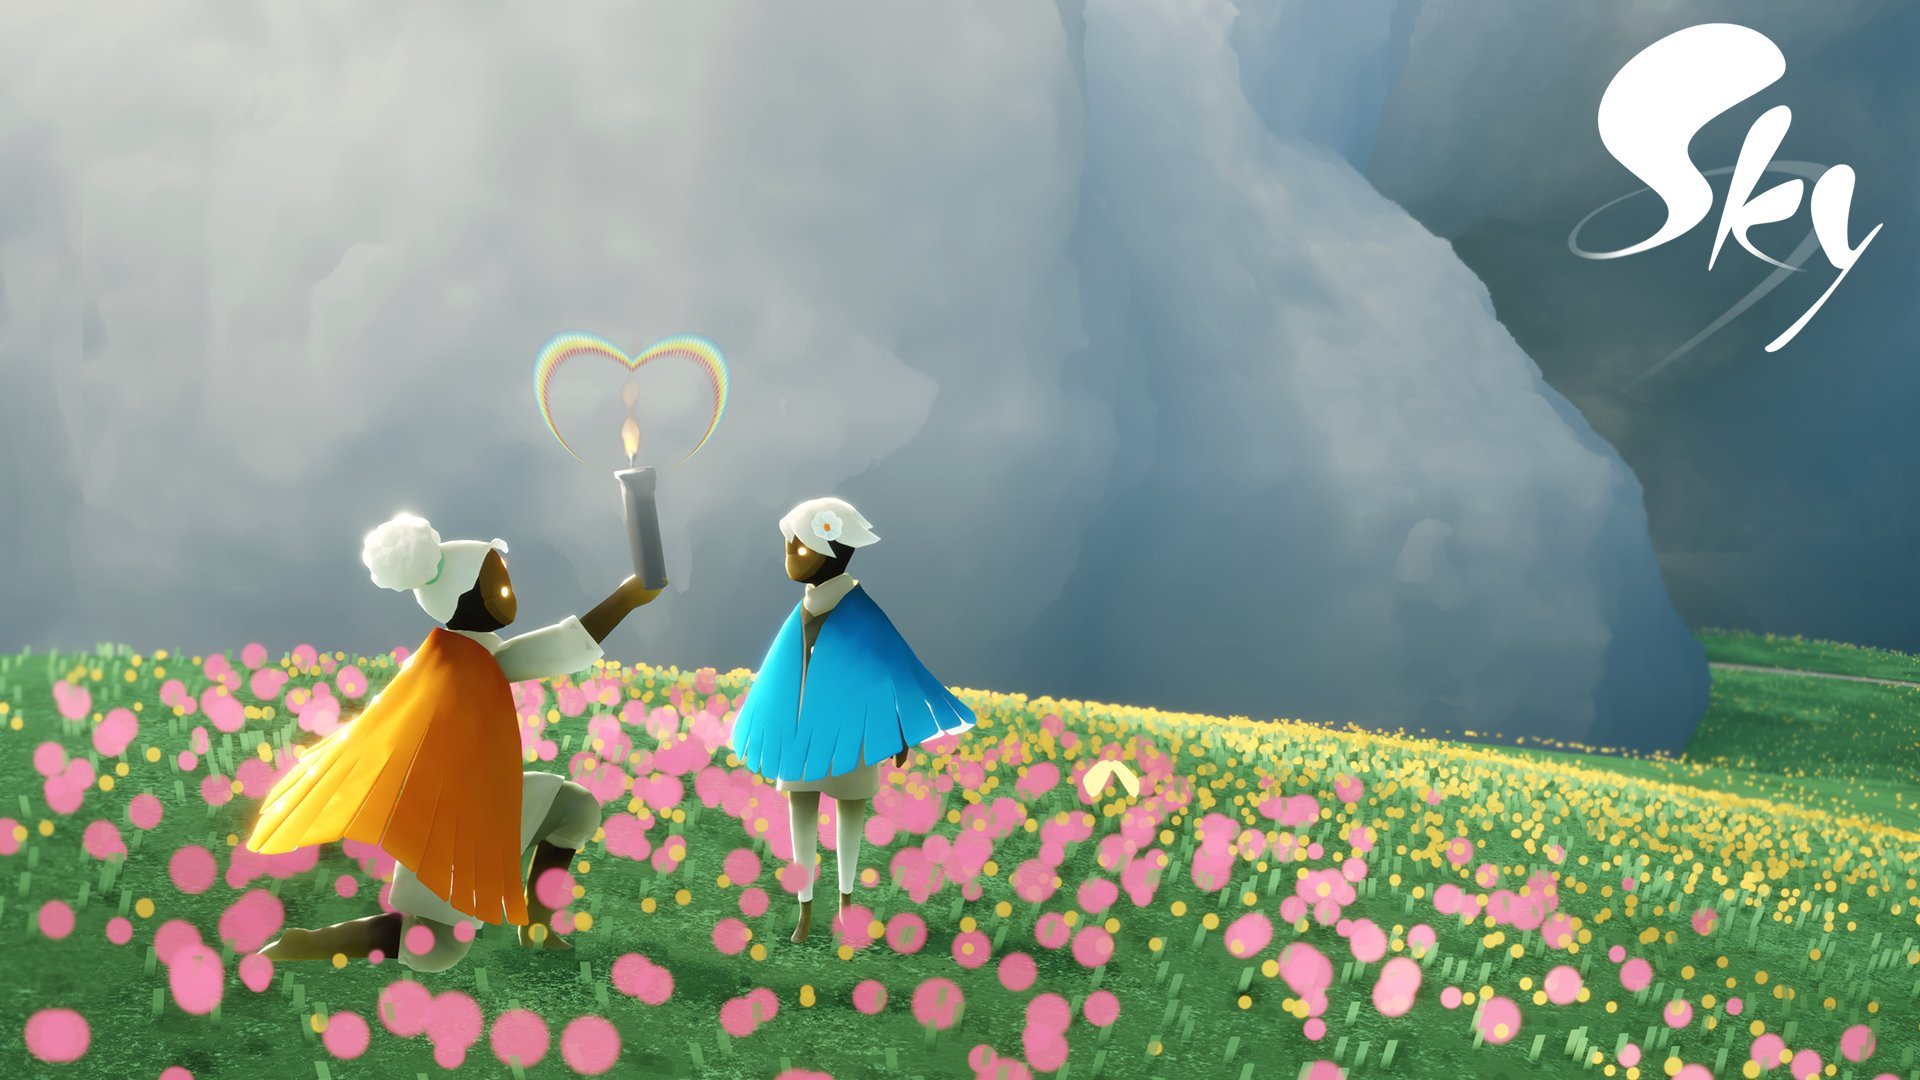 Characters from Sky: The Children of Light meeting on top of a flower covered hill.